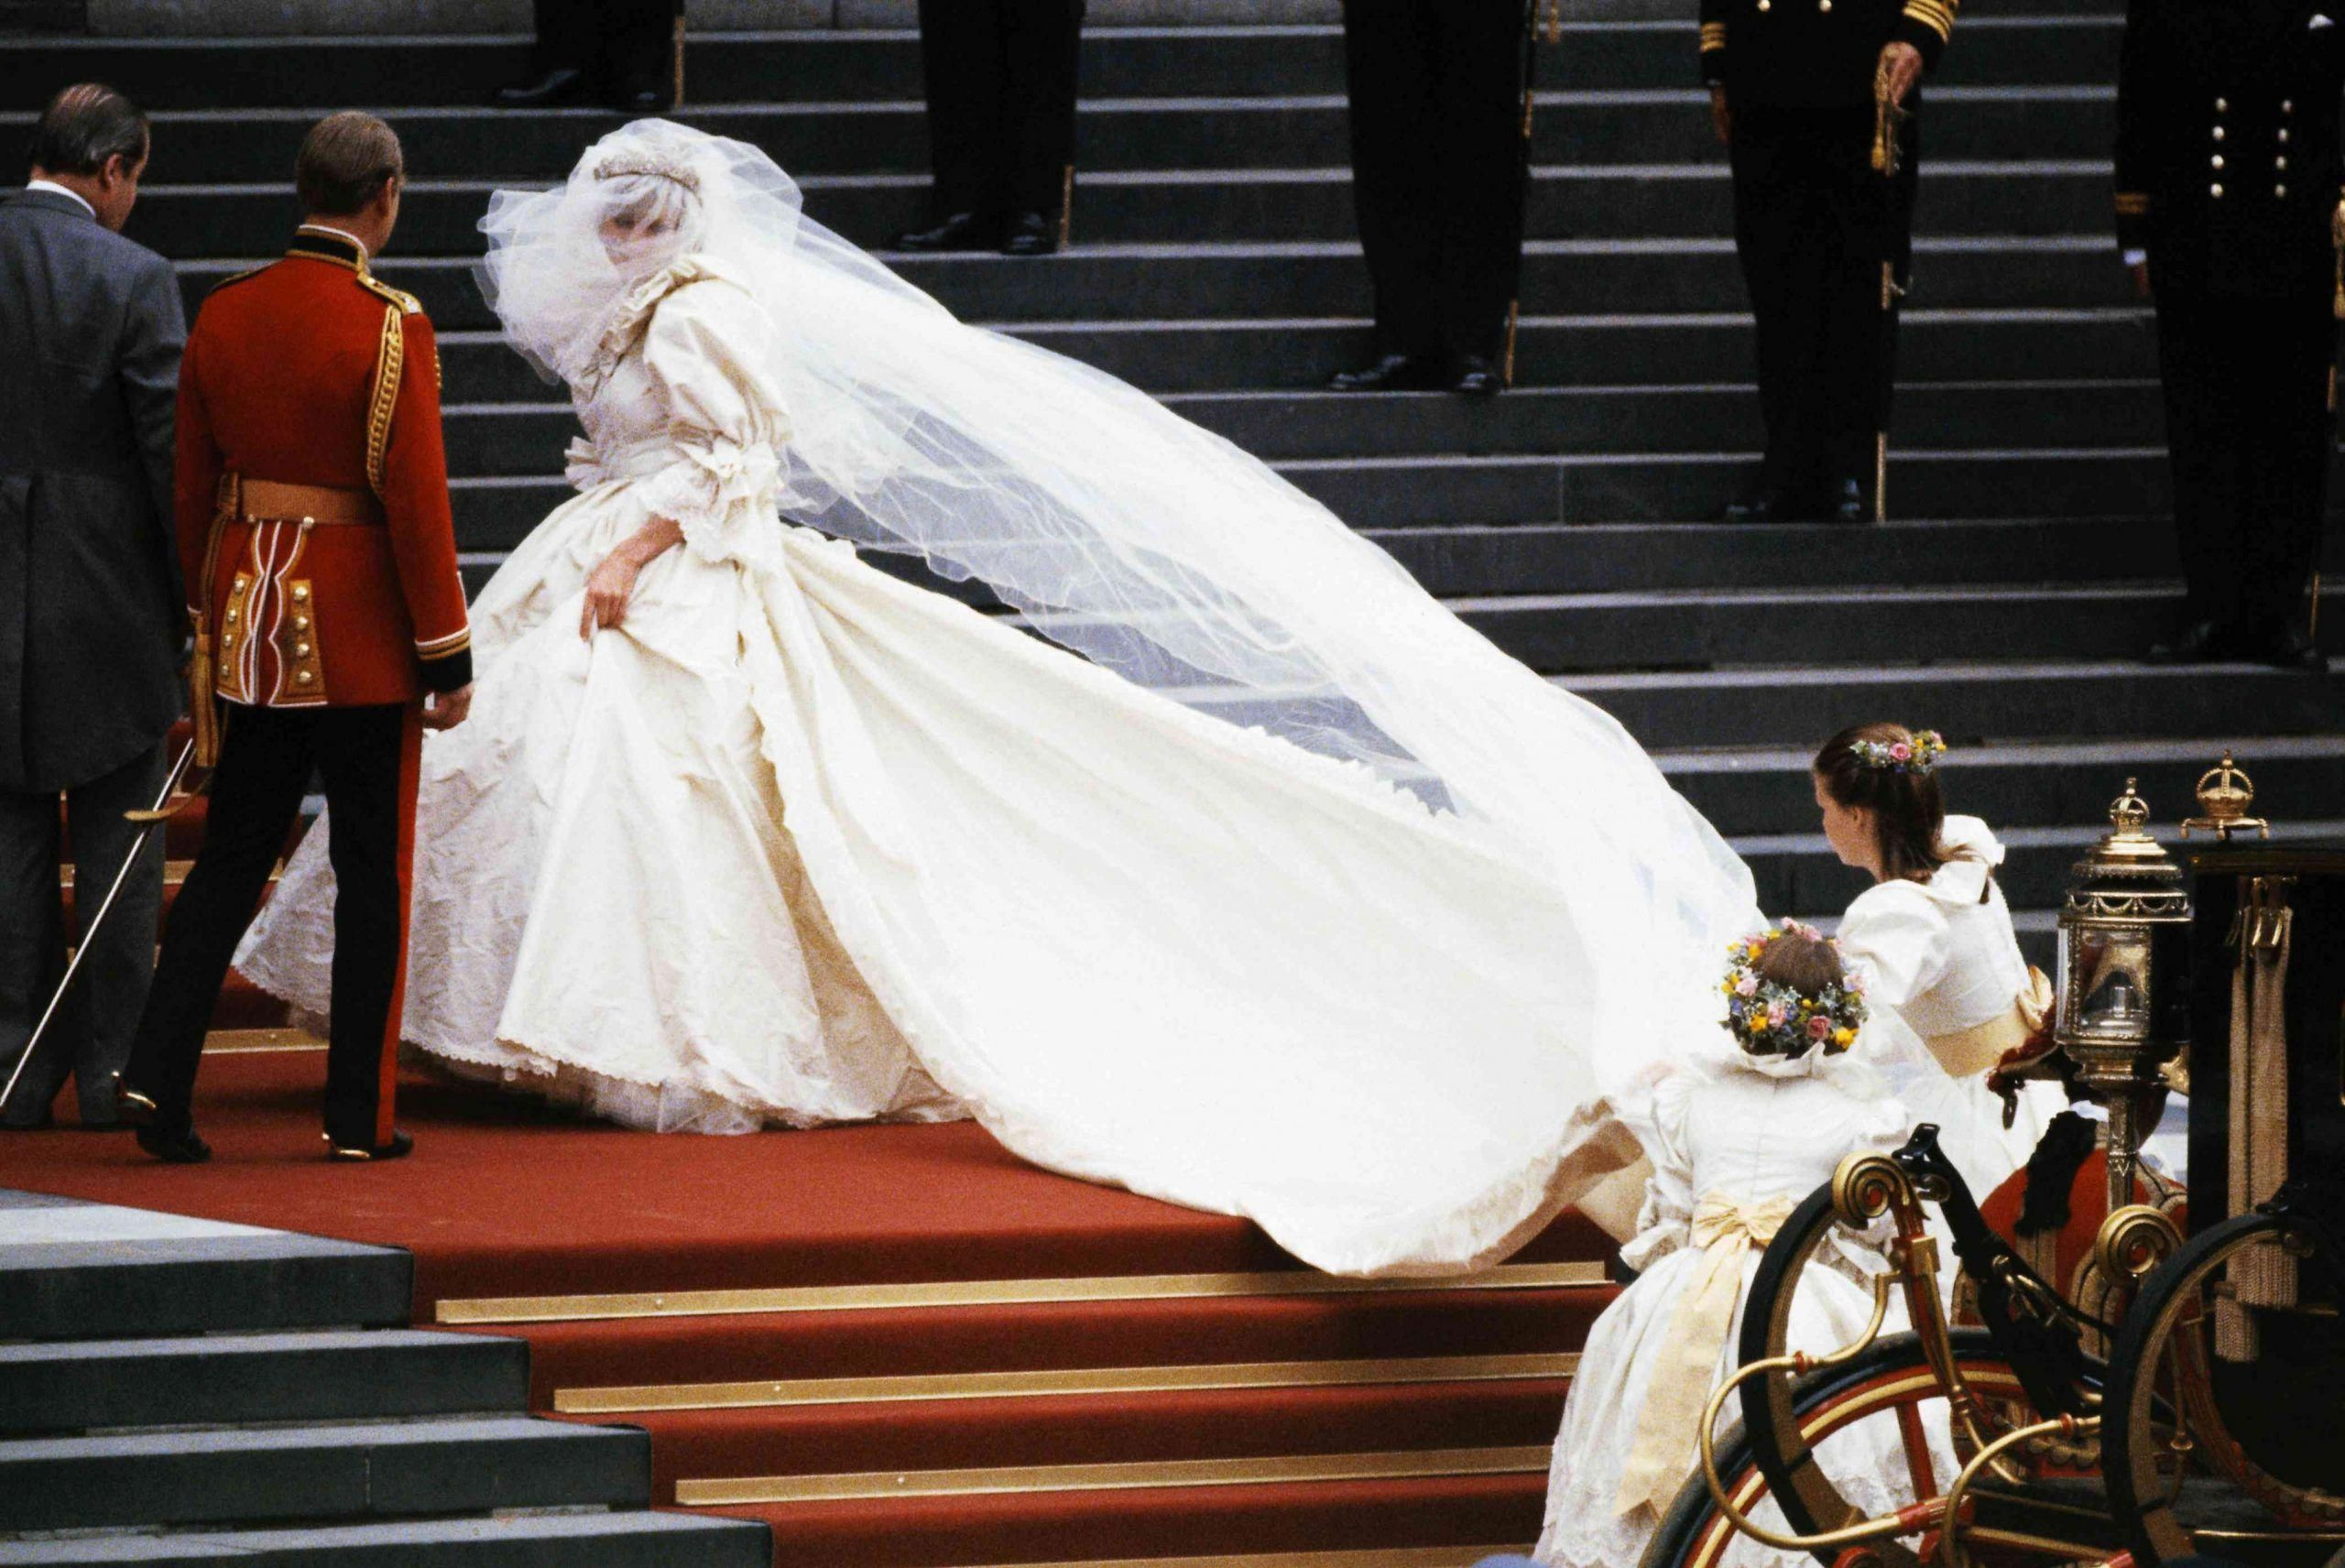 Pin by The Amber Brides on Weddings in 2020 Diana